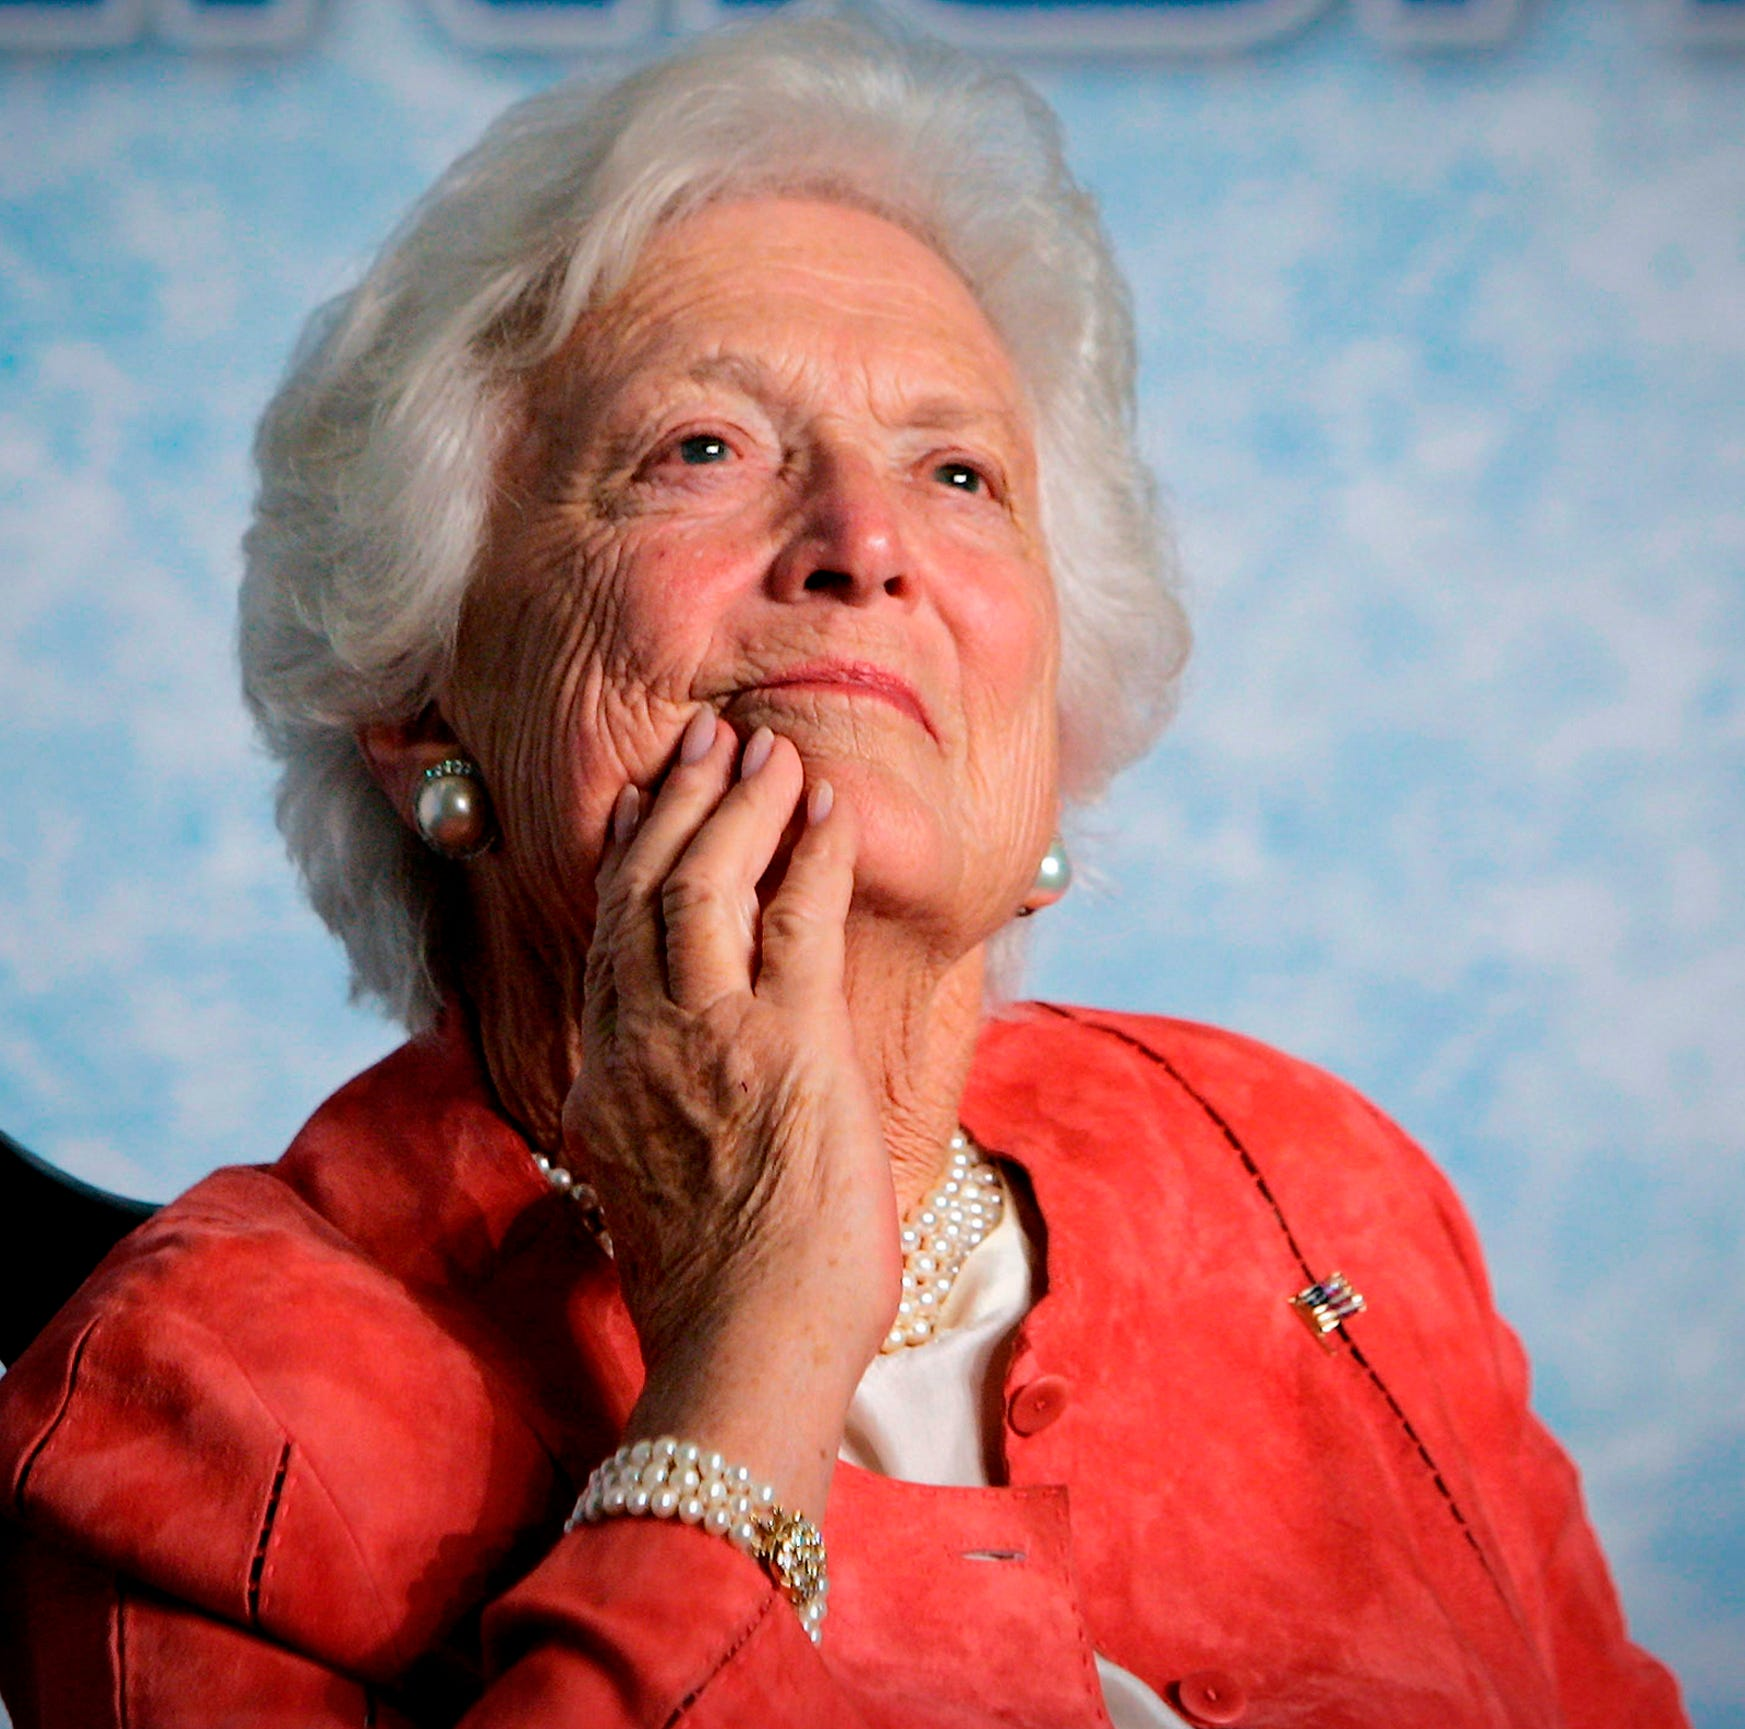 'Look what I did to her sons.' Trump fires back at Barbara Bush remarks in new biography